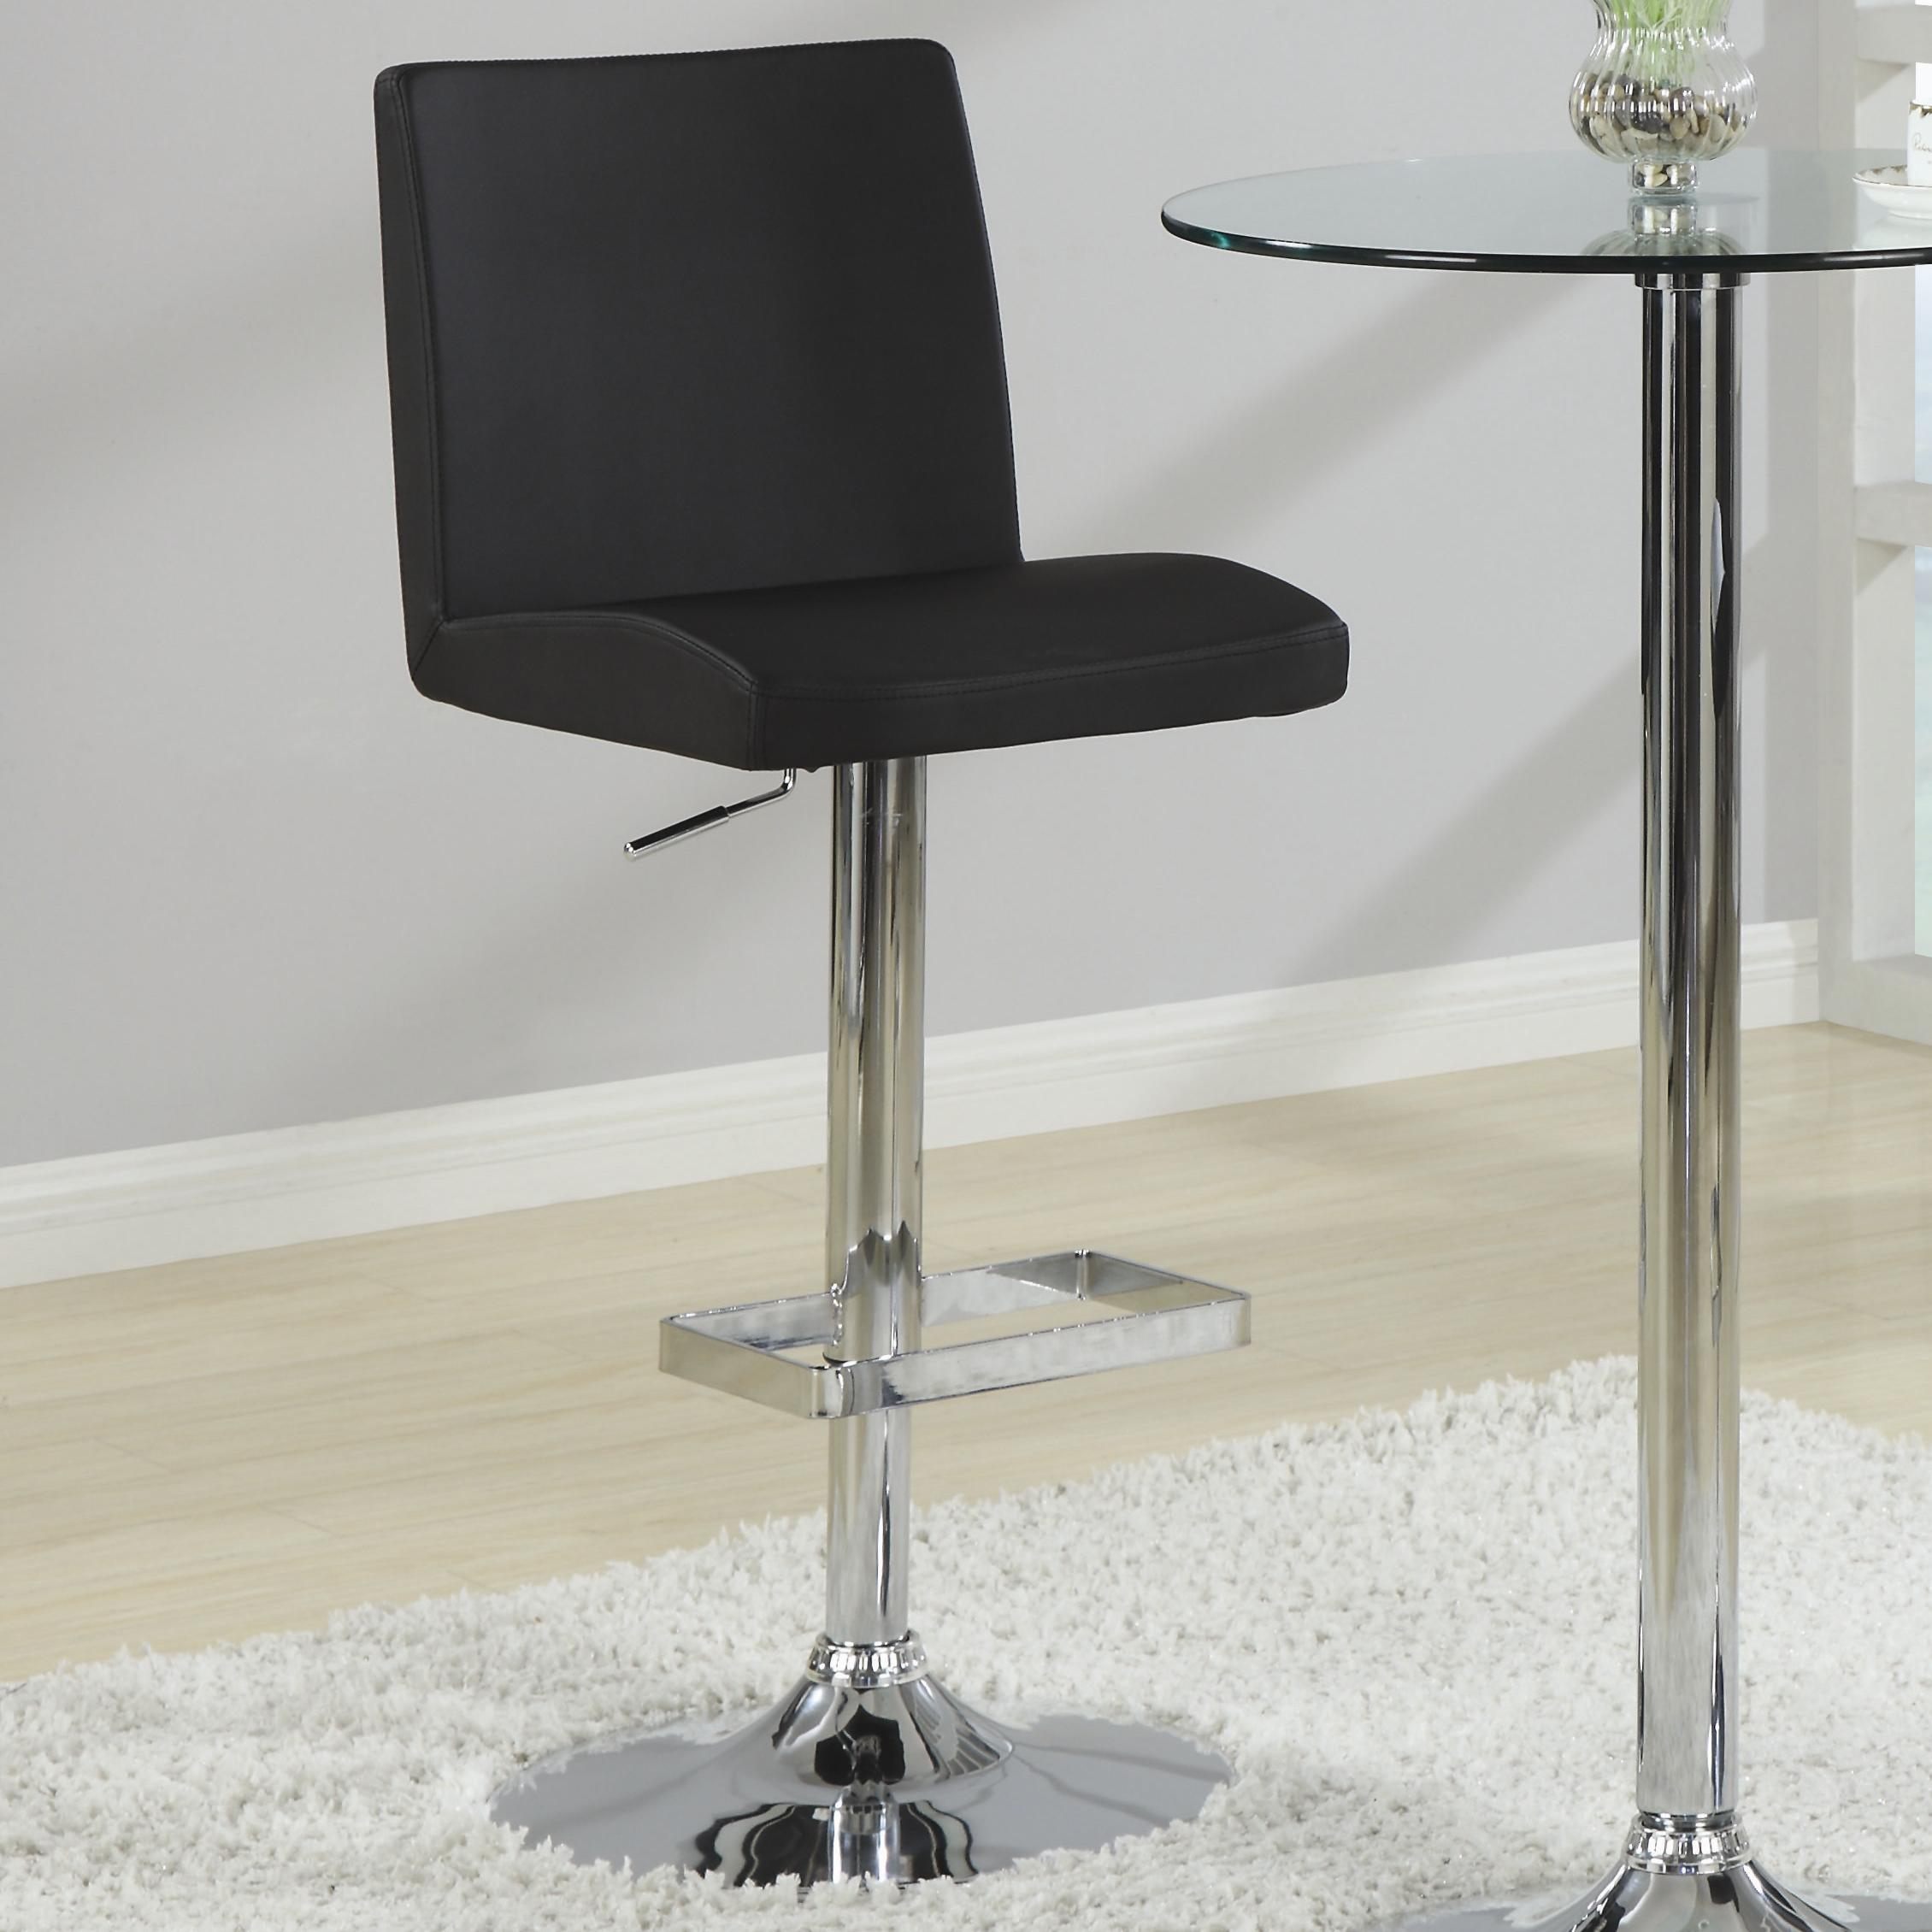 Coaster Bar Units and Bar Tables Stool (Black) - Item Number: 120357